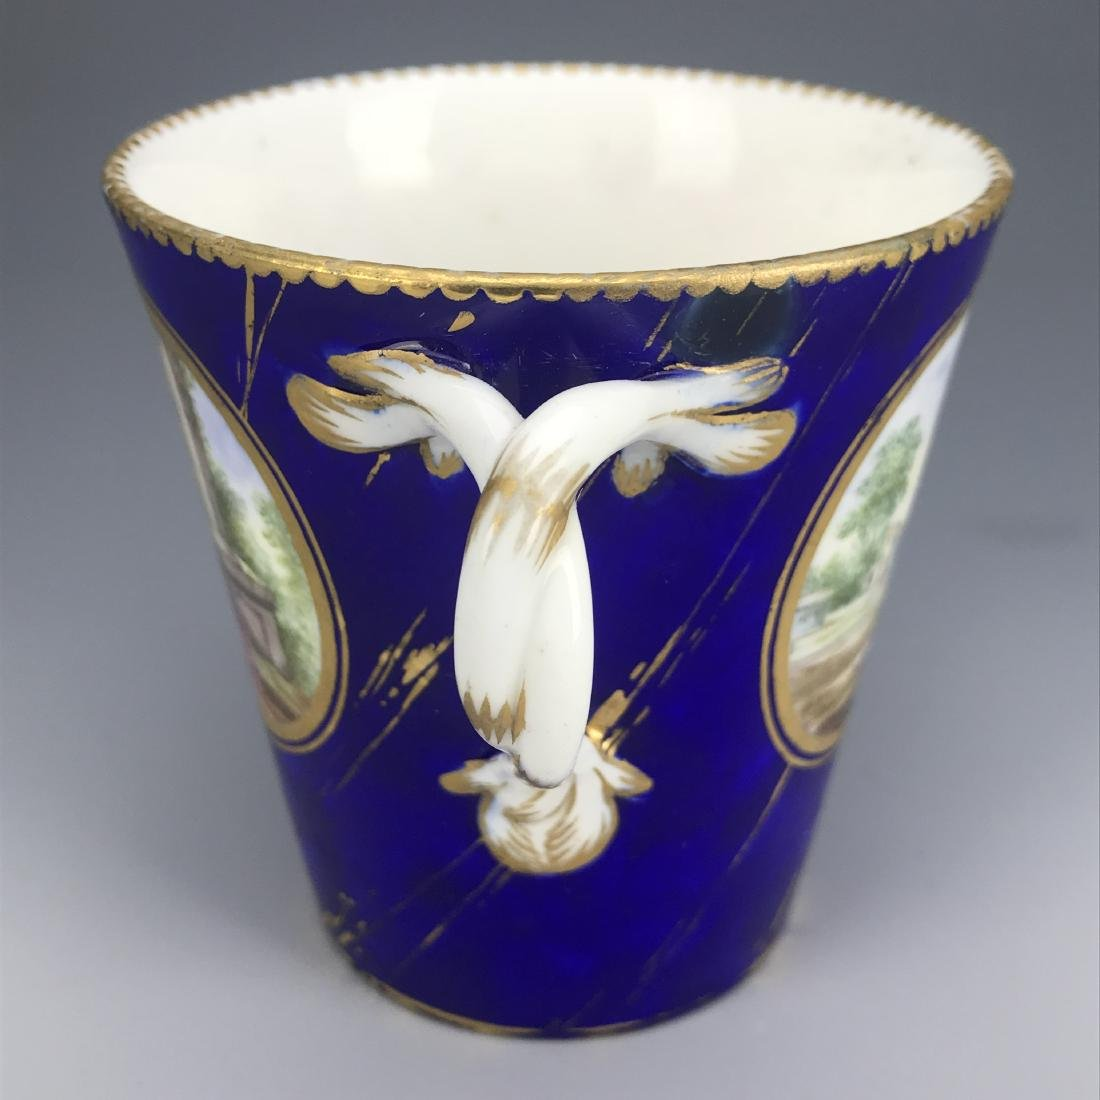 18th C. French Porcelain Sevres Cup & Saucer - 6